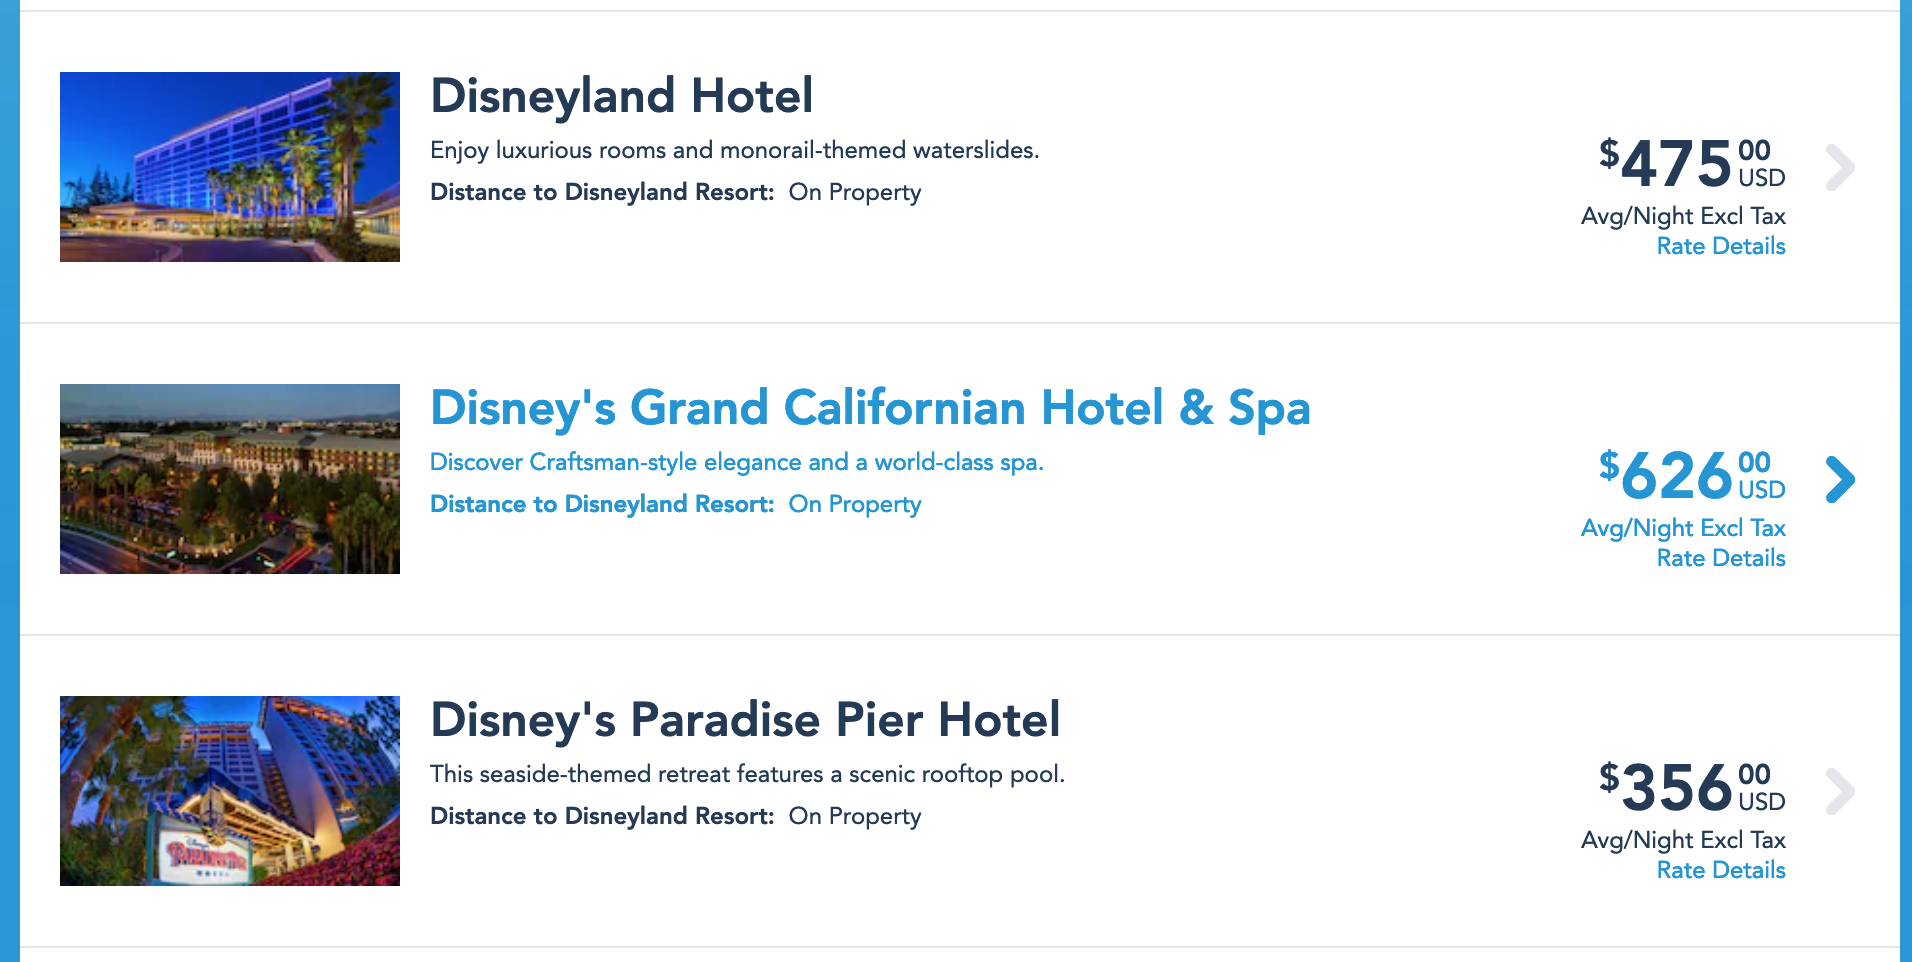 disney paradise pier review compare rates.png